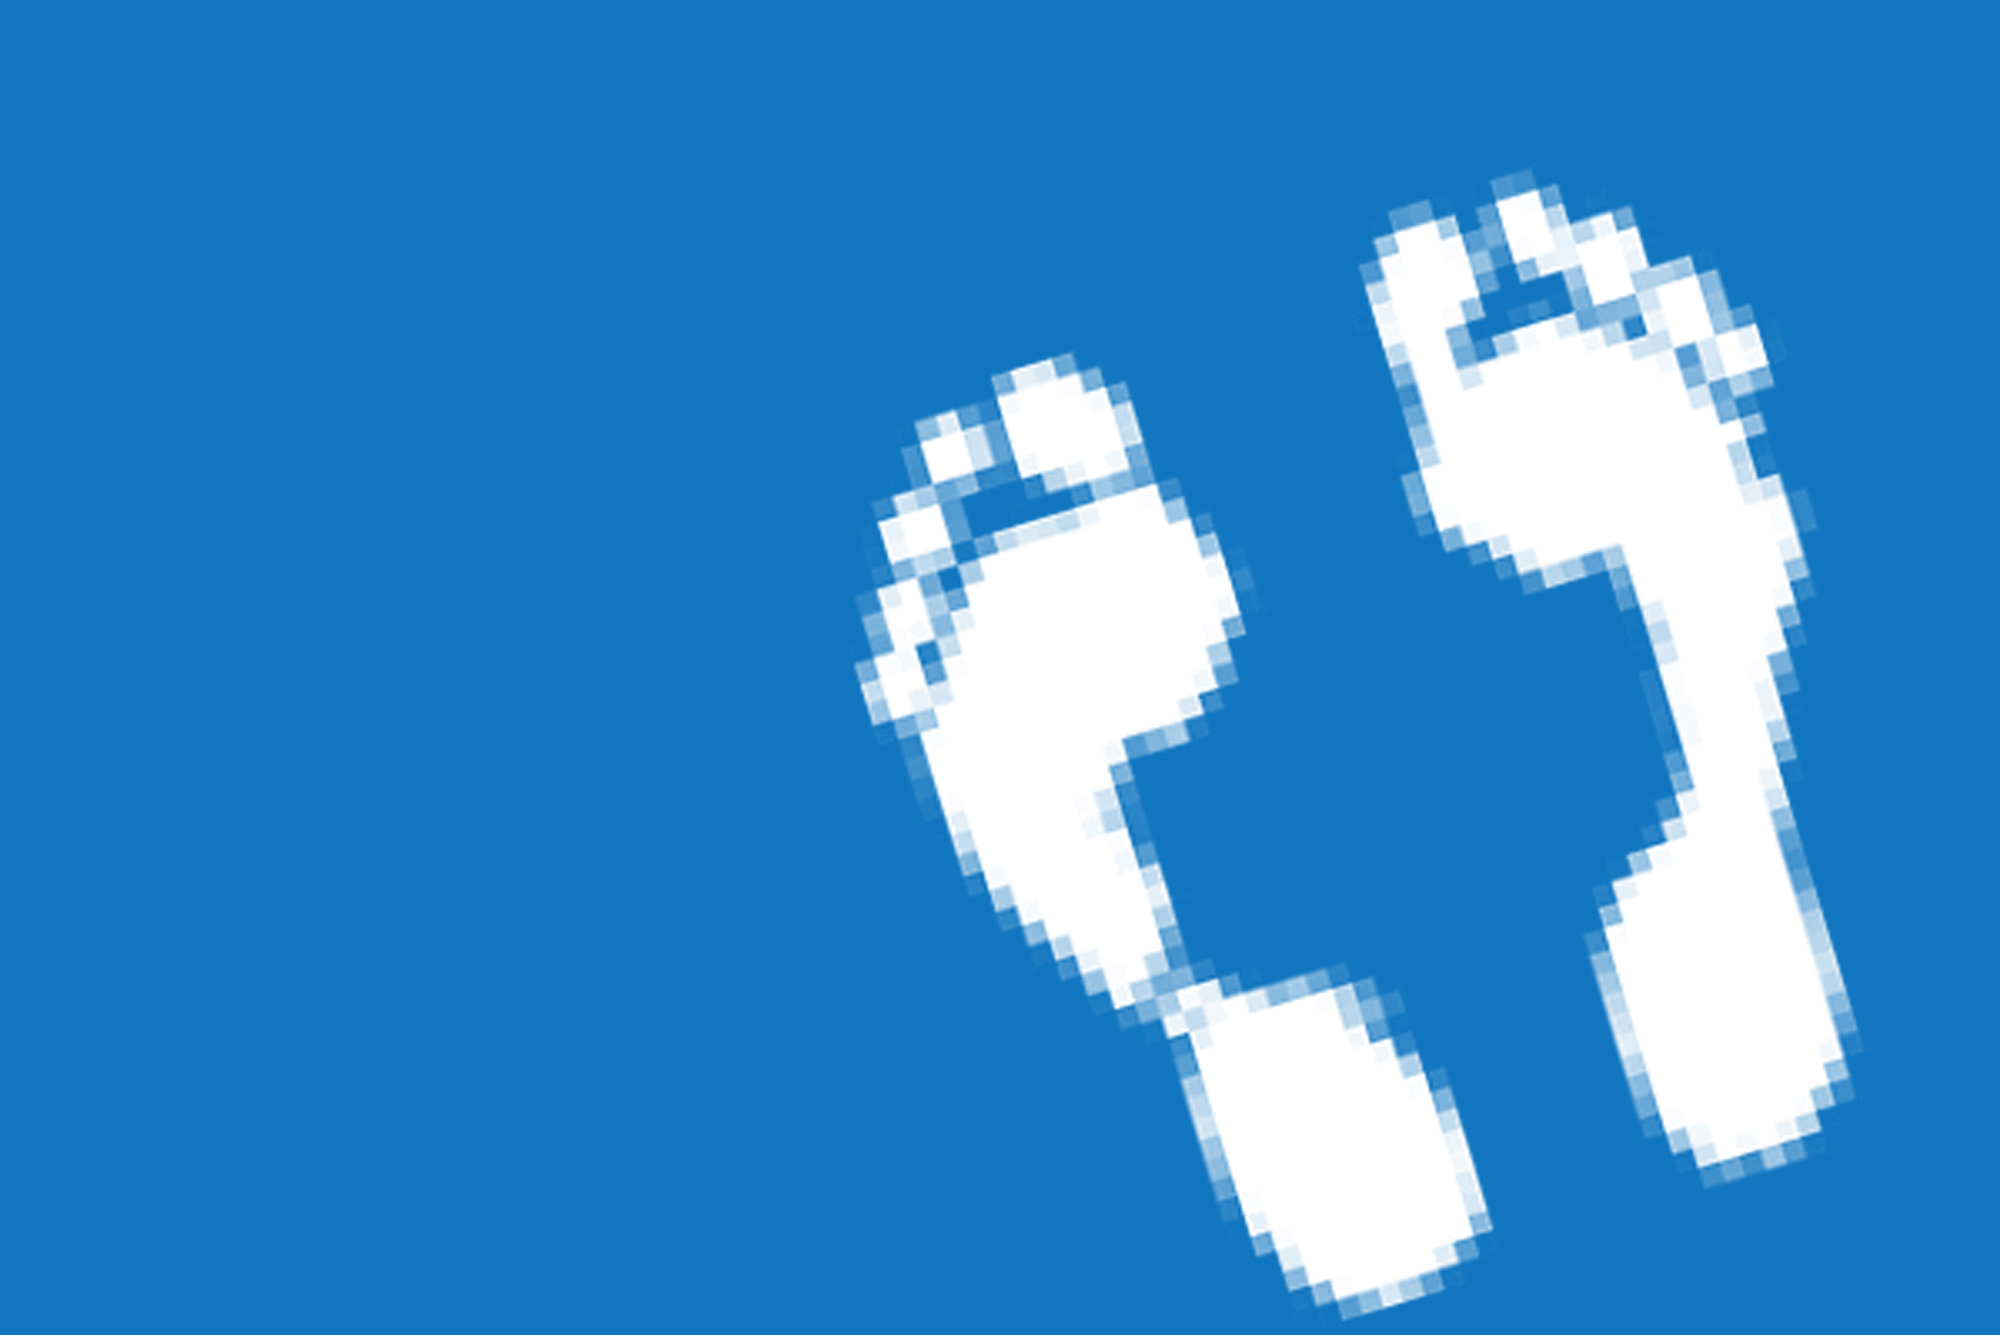 Footprint on blue background - Digital footprint